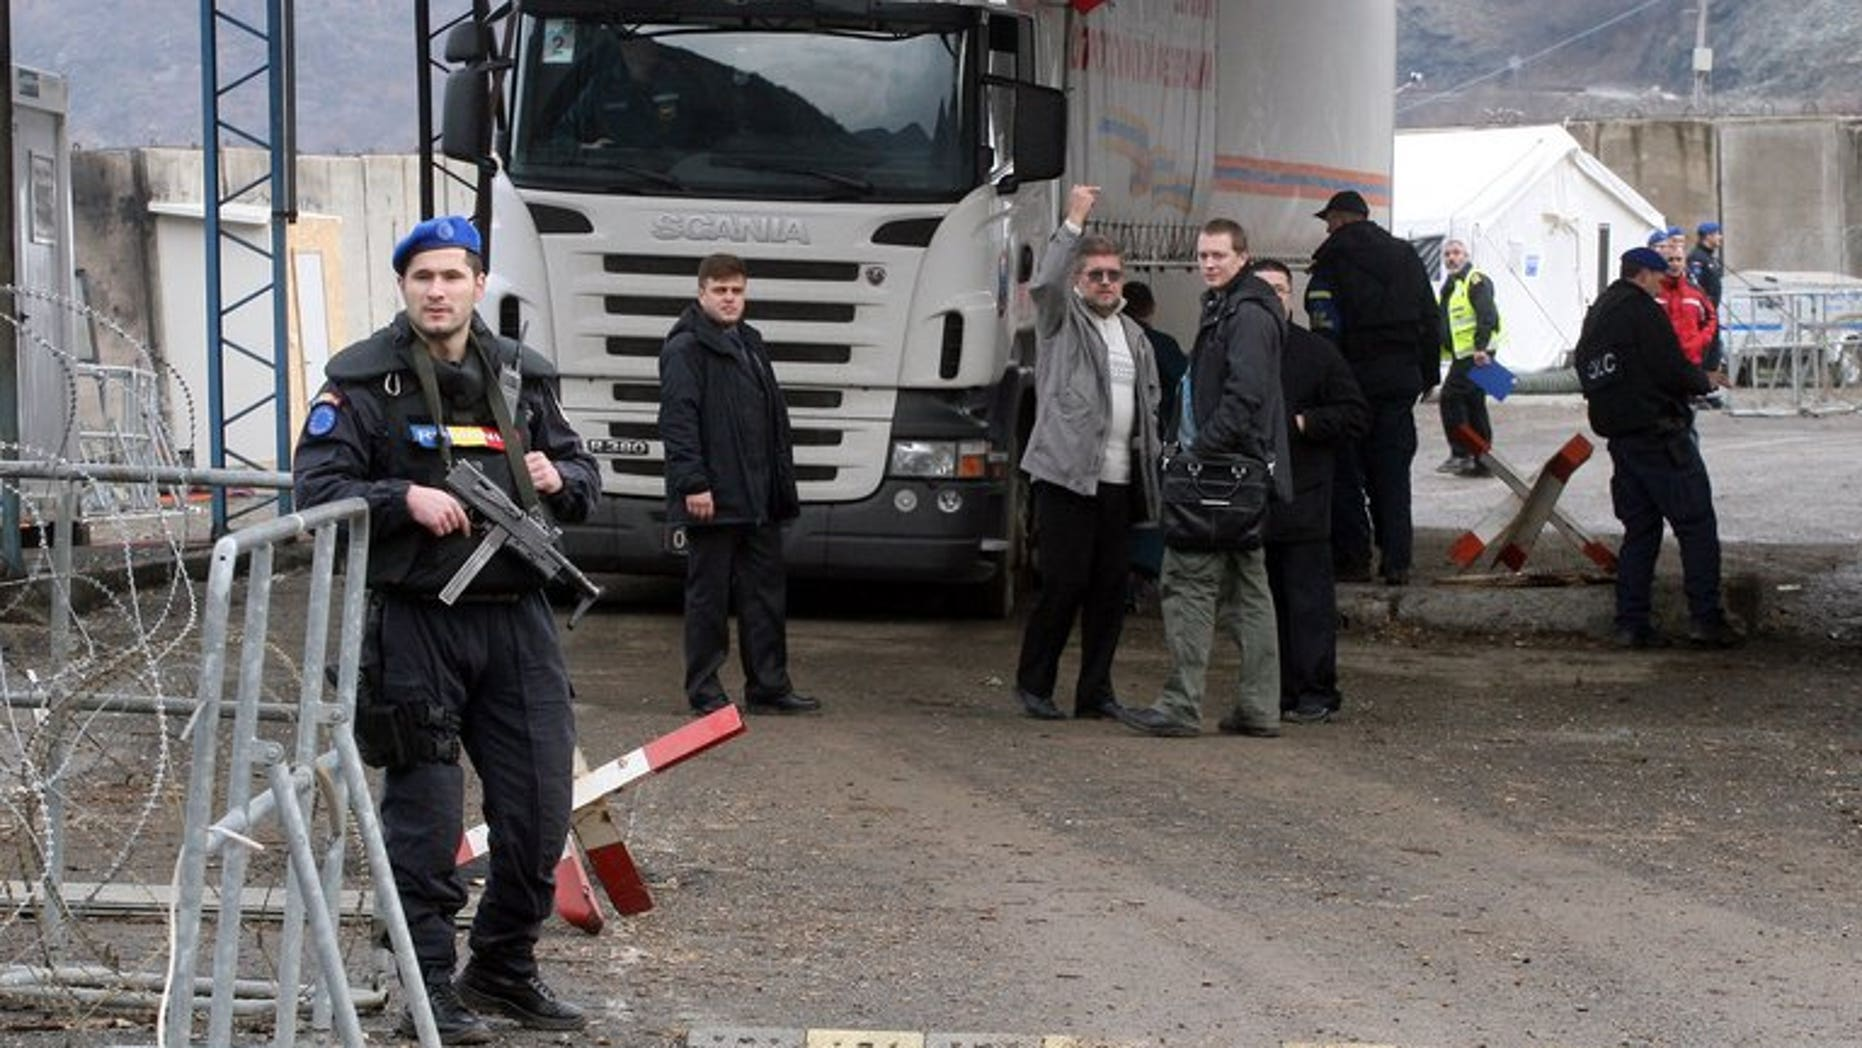 A Romanian officer of the European Union's police force in Kosovo stands guard in front of a truck carring Russian aid at the Jarinje border crossing between Serbia and northern Kosovo on December 13, 2011. Gunmen shot dead a member of the European Union's police force in Kosovo's flashpoint northern region Thursday, in the first deadly attack on the mission since its creation five years ago.